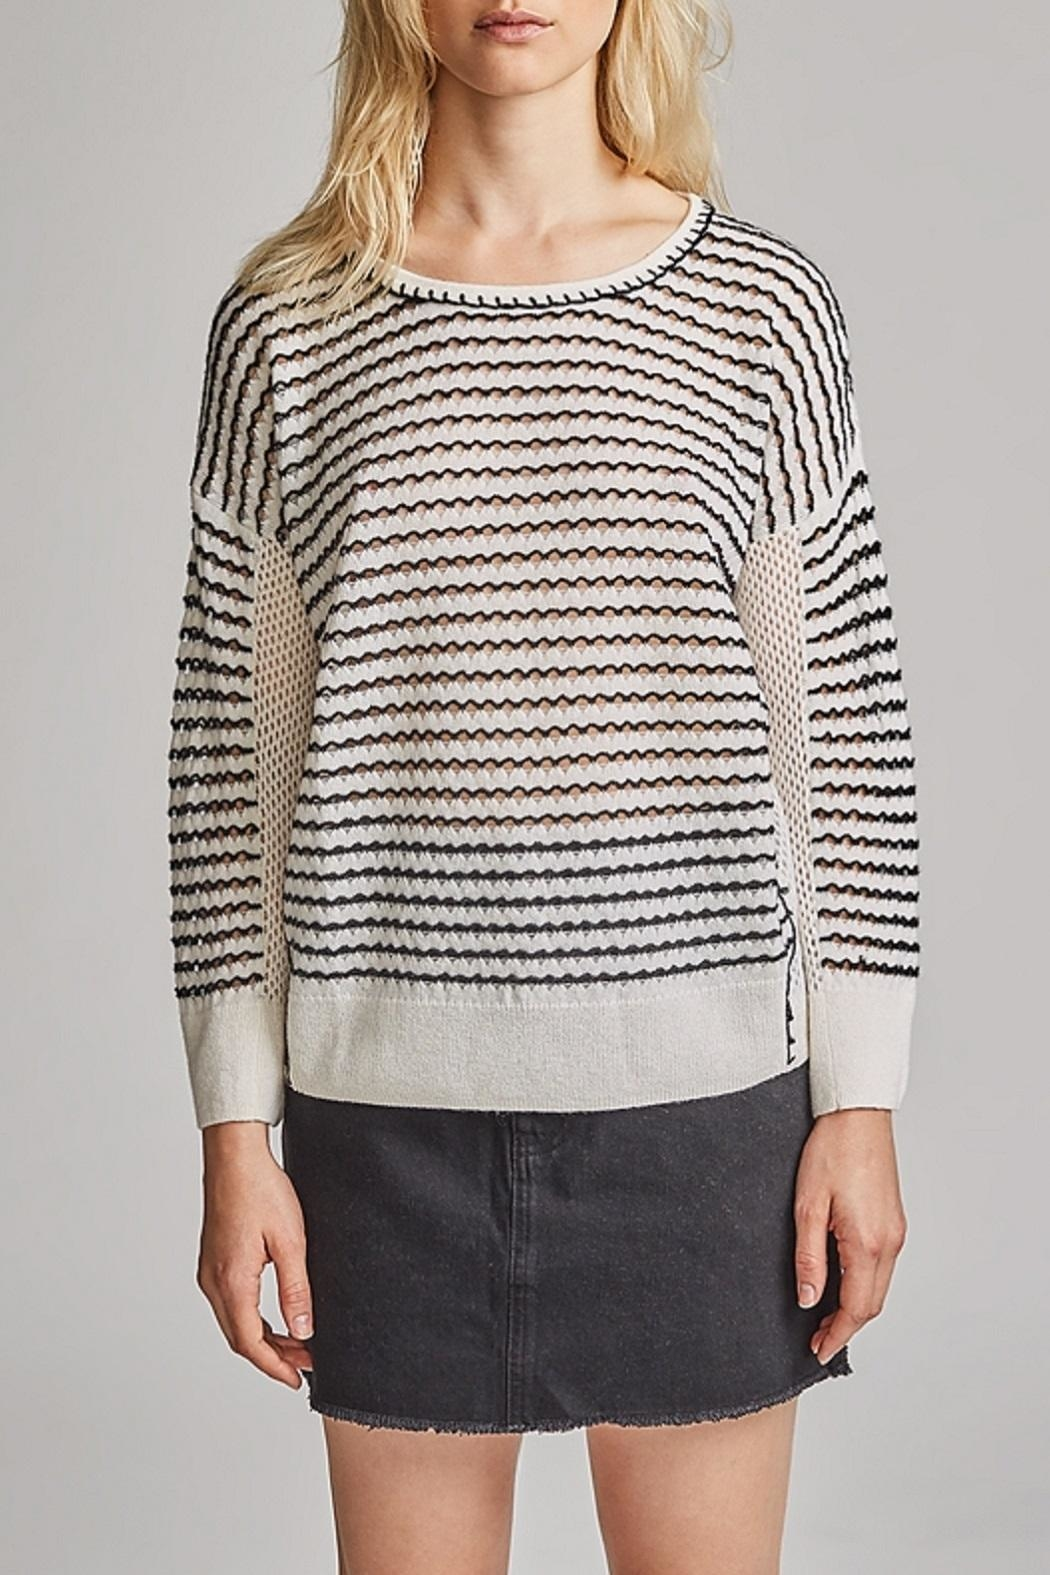 White + Warren Cashmere Crew Neck Sweater - Main Image